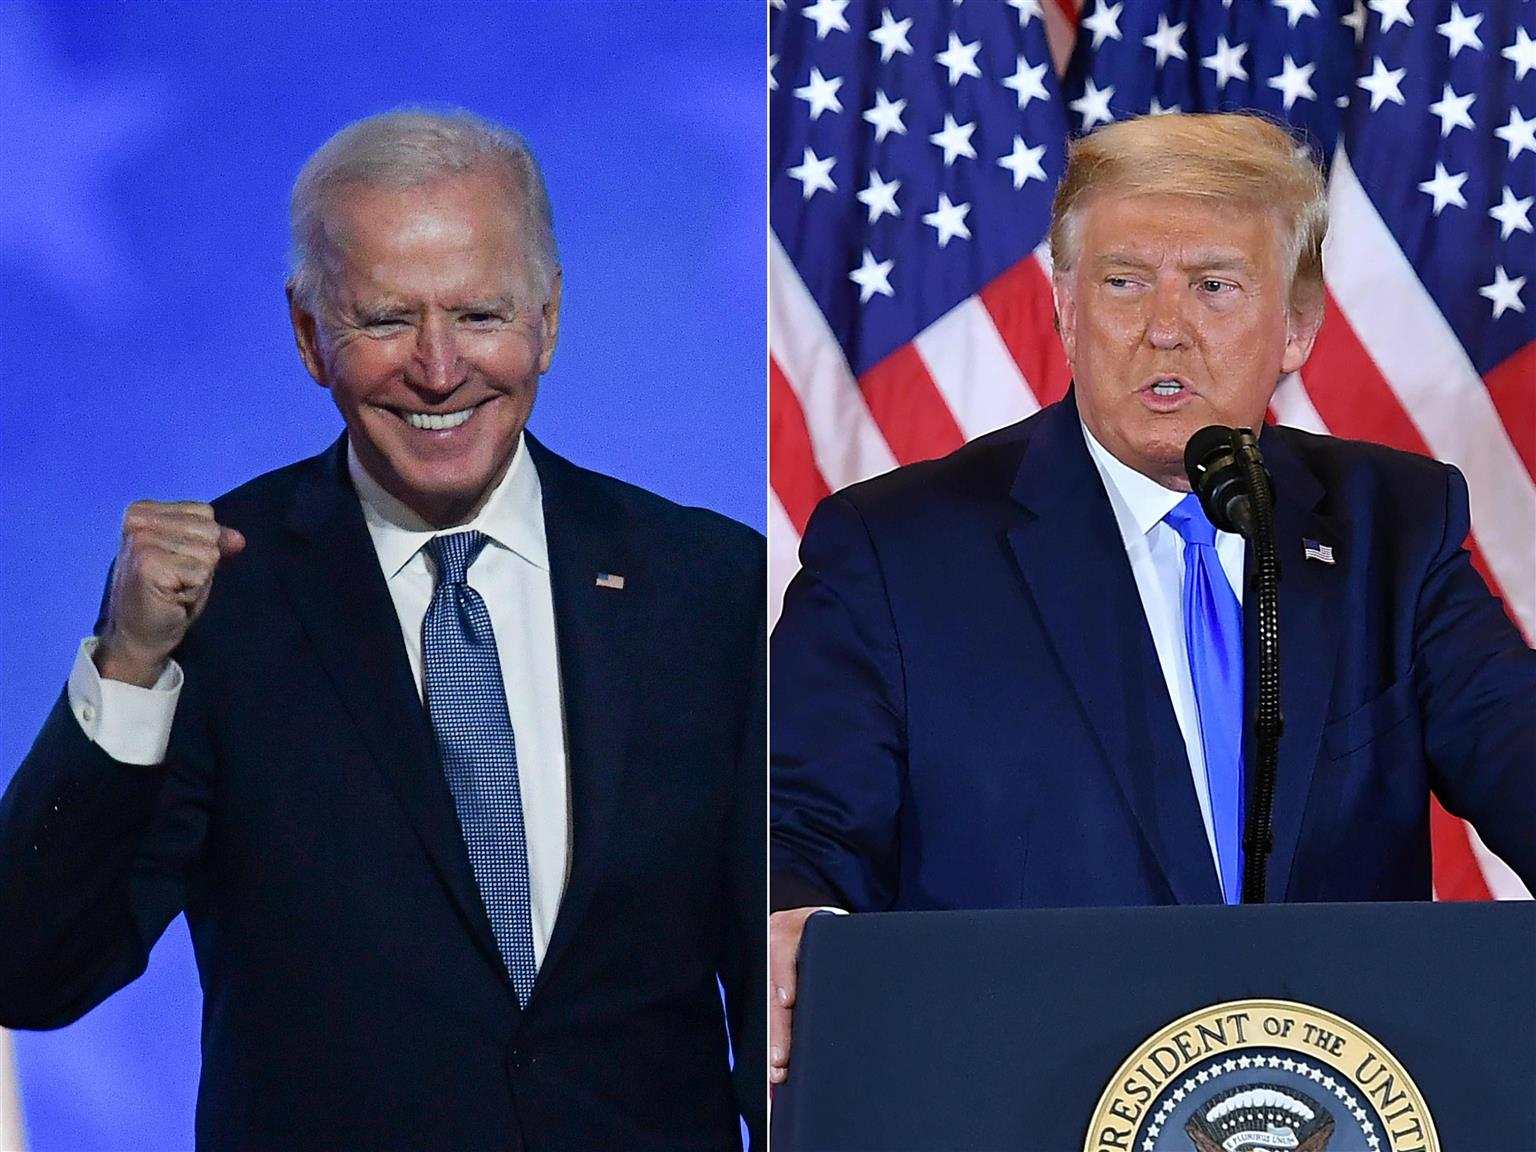 Trump Impeachment Up To Congress: Biden